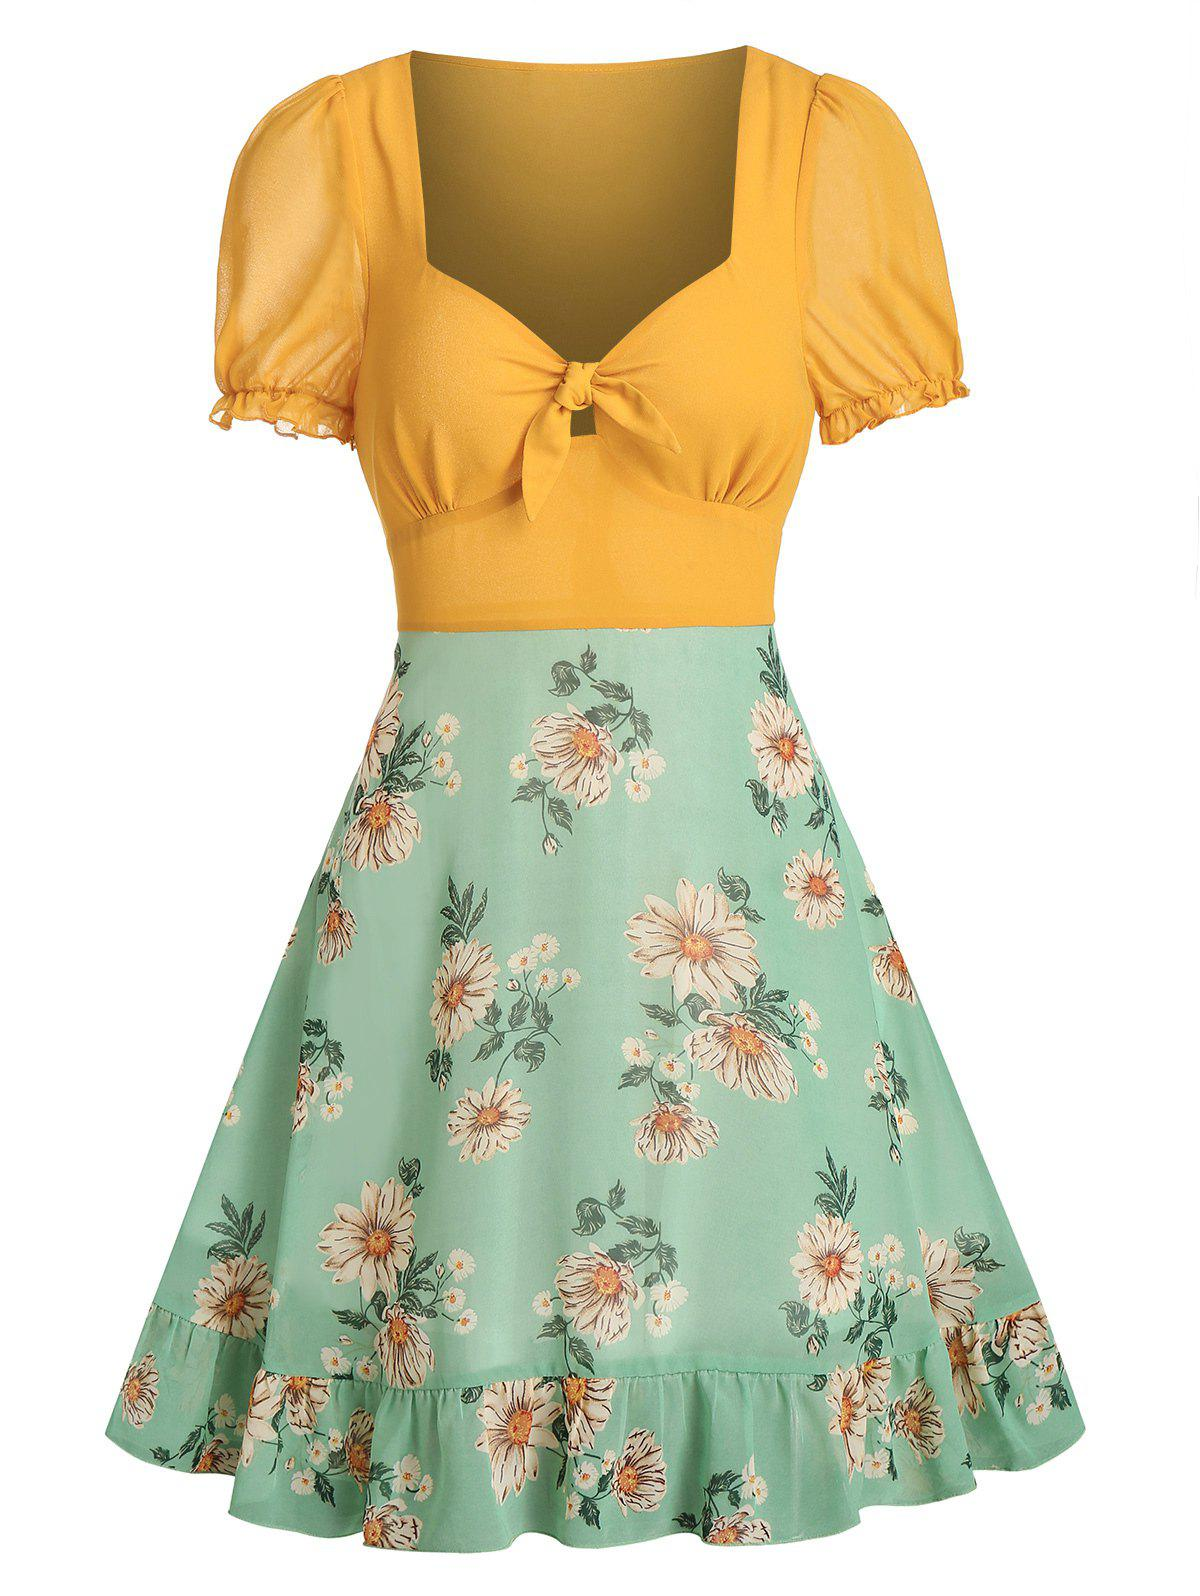 Floral Print Knot Front Chiffon Dress - GREEN M